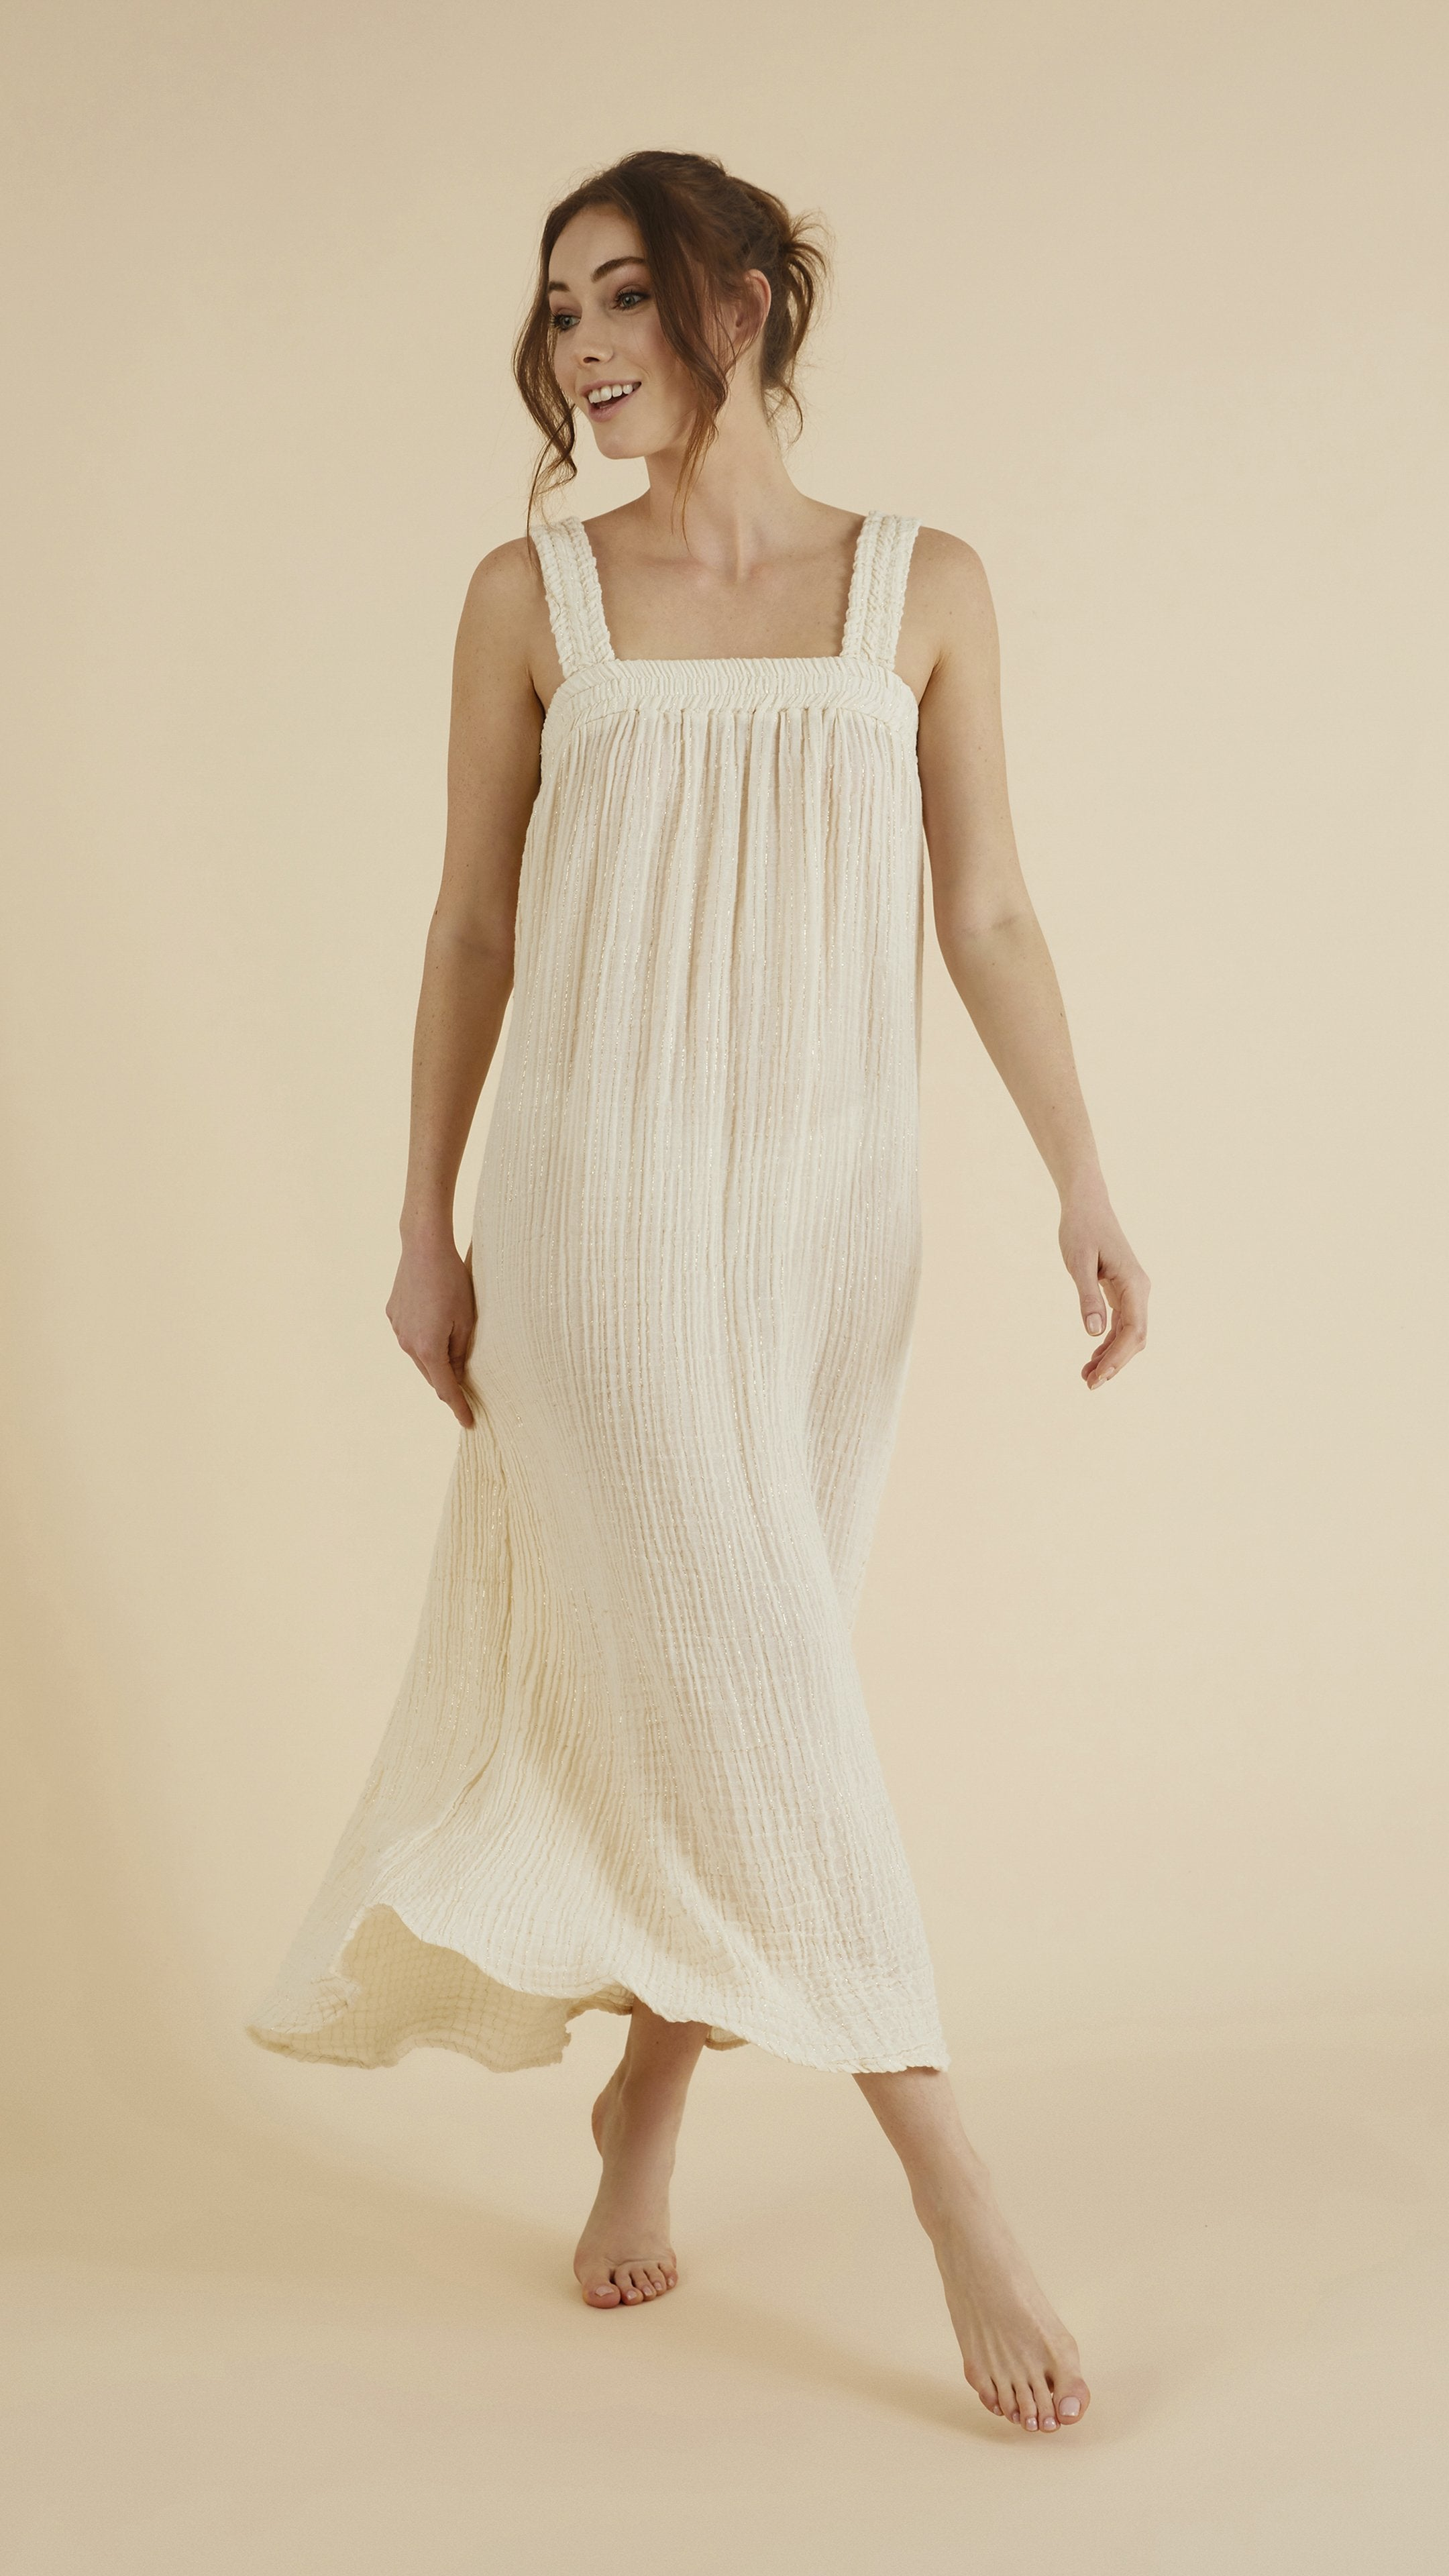 Front profile - Noa Straps Maxi Dress in Natural with Gold Stripes